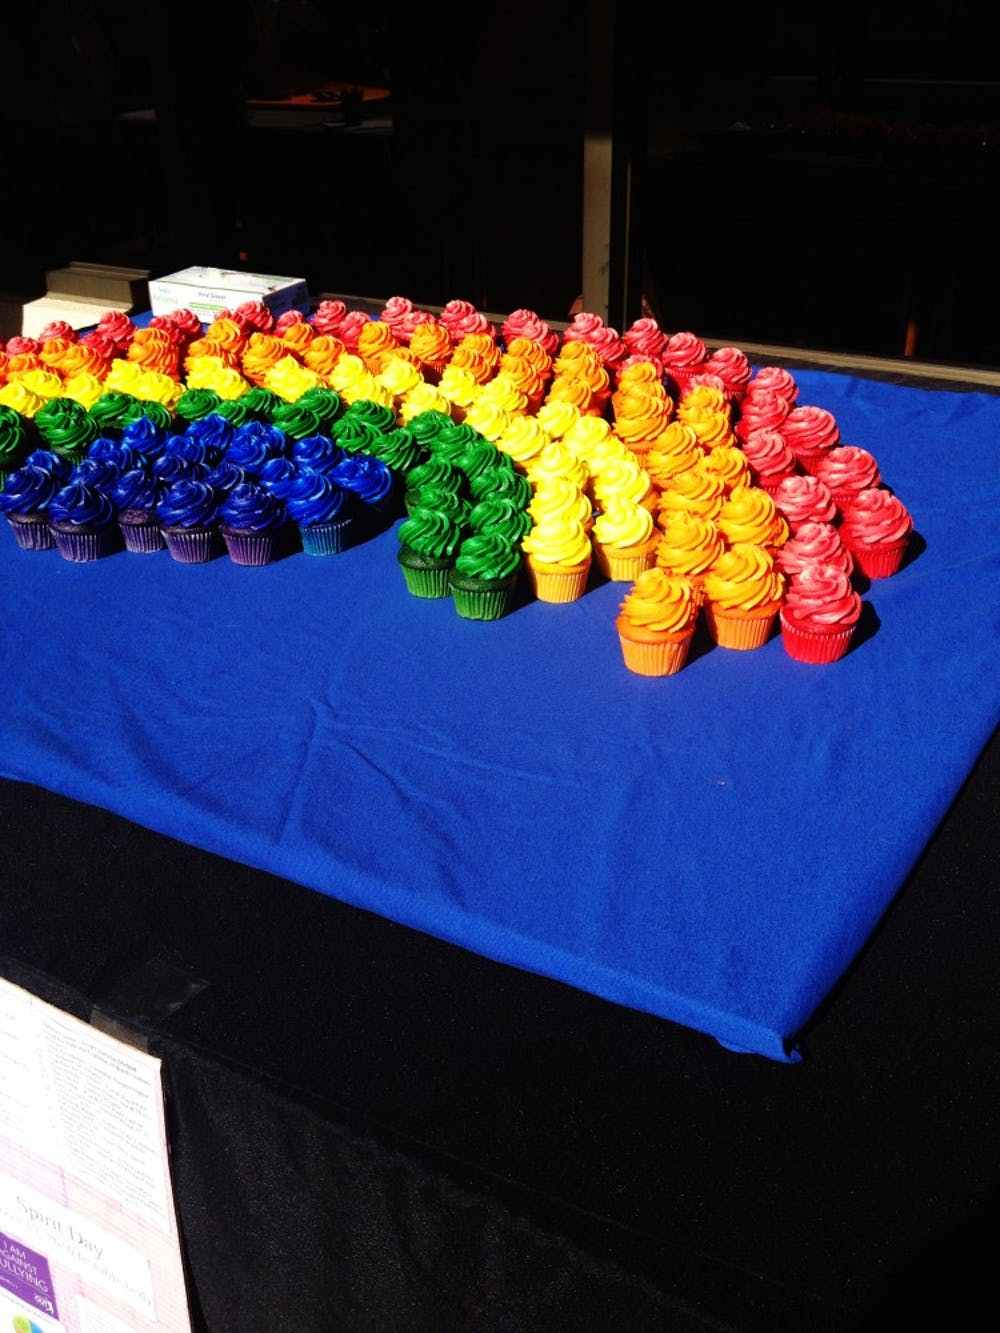 SAFE cupcakes bring color to LGBT adversity